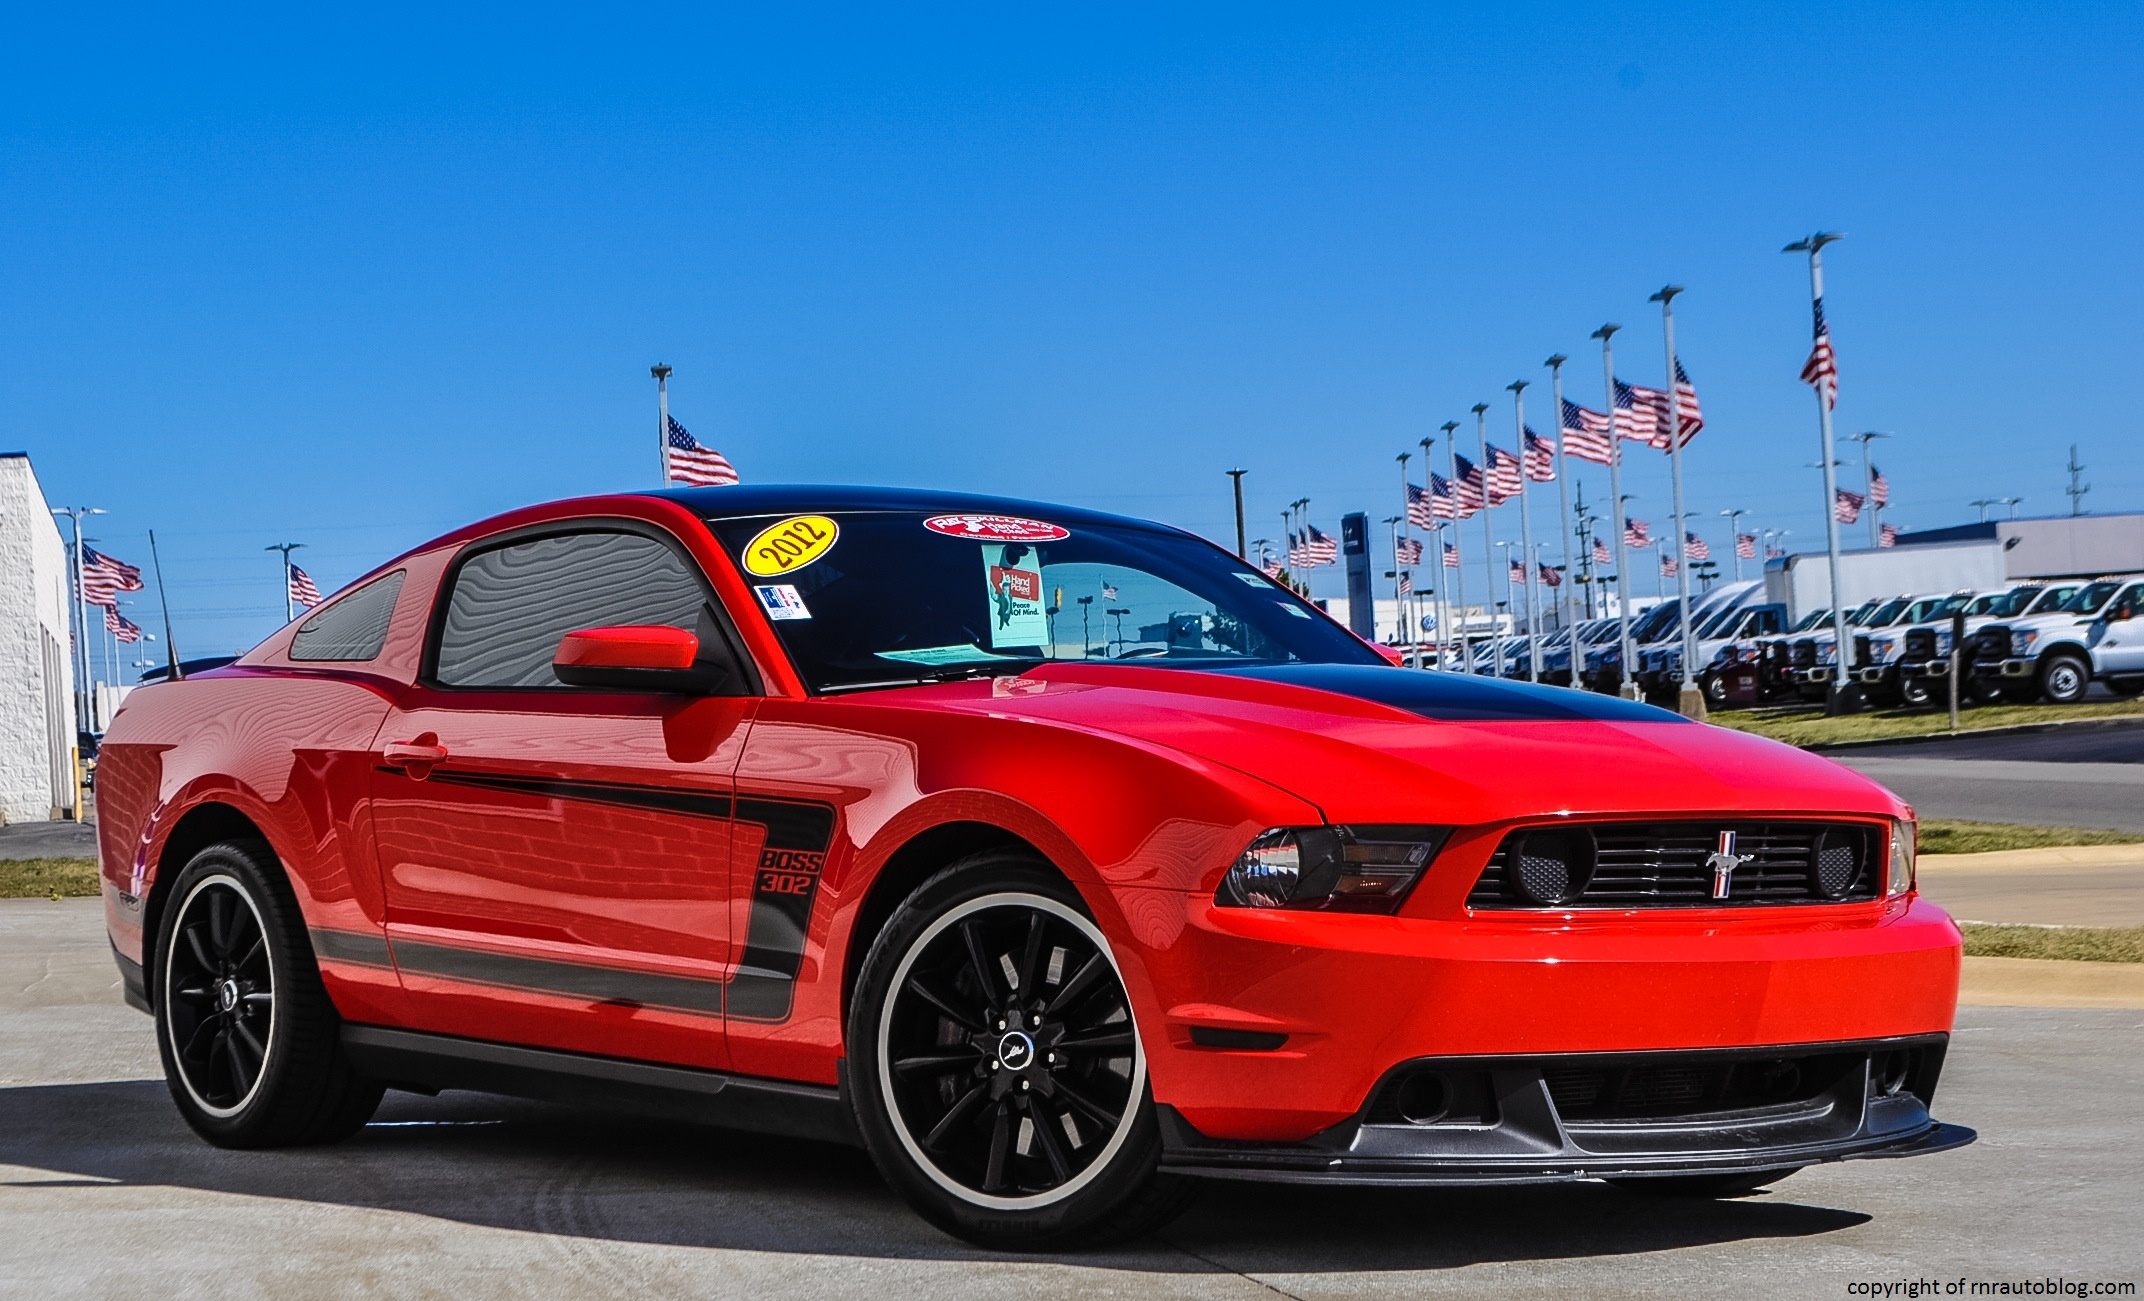 2012 Ford Mustang Boss 302 Review Rnr Automotive Blog